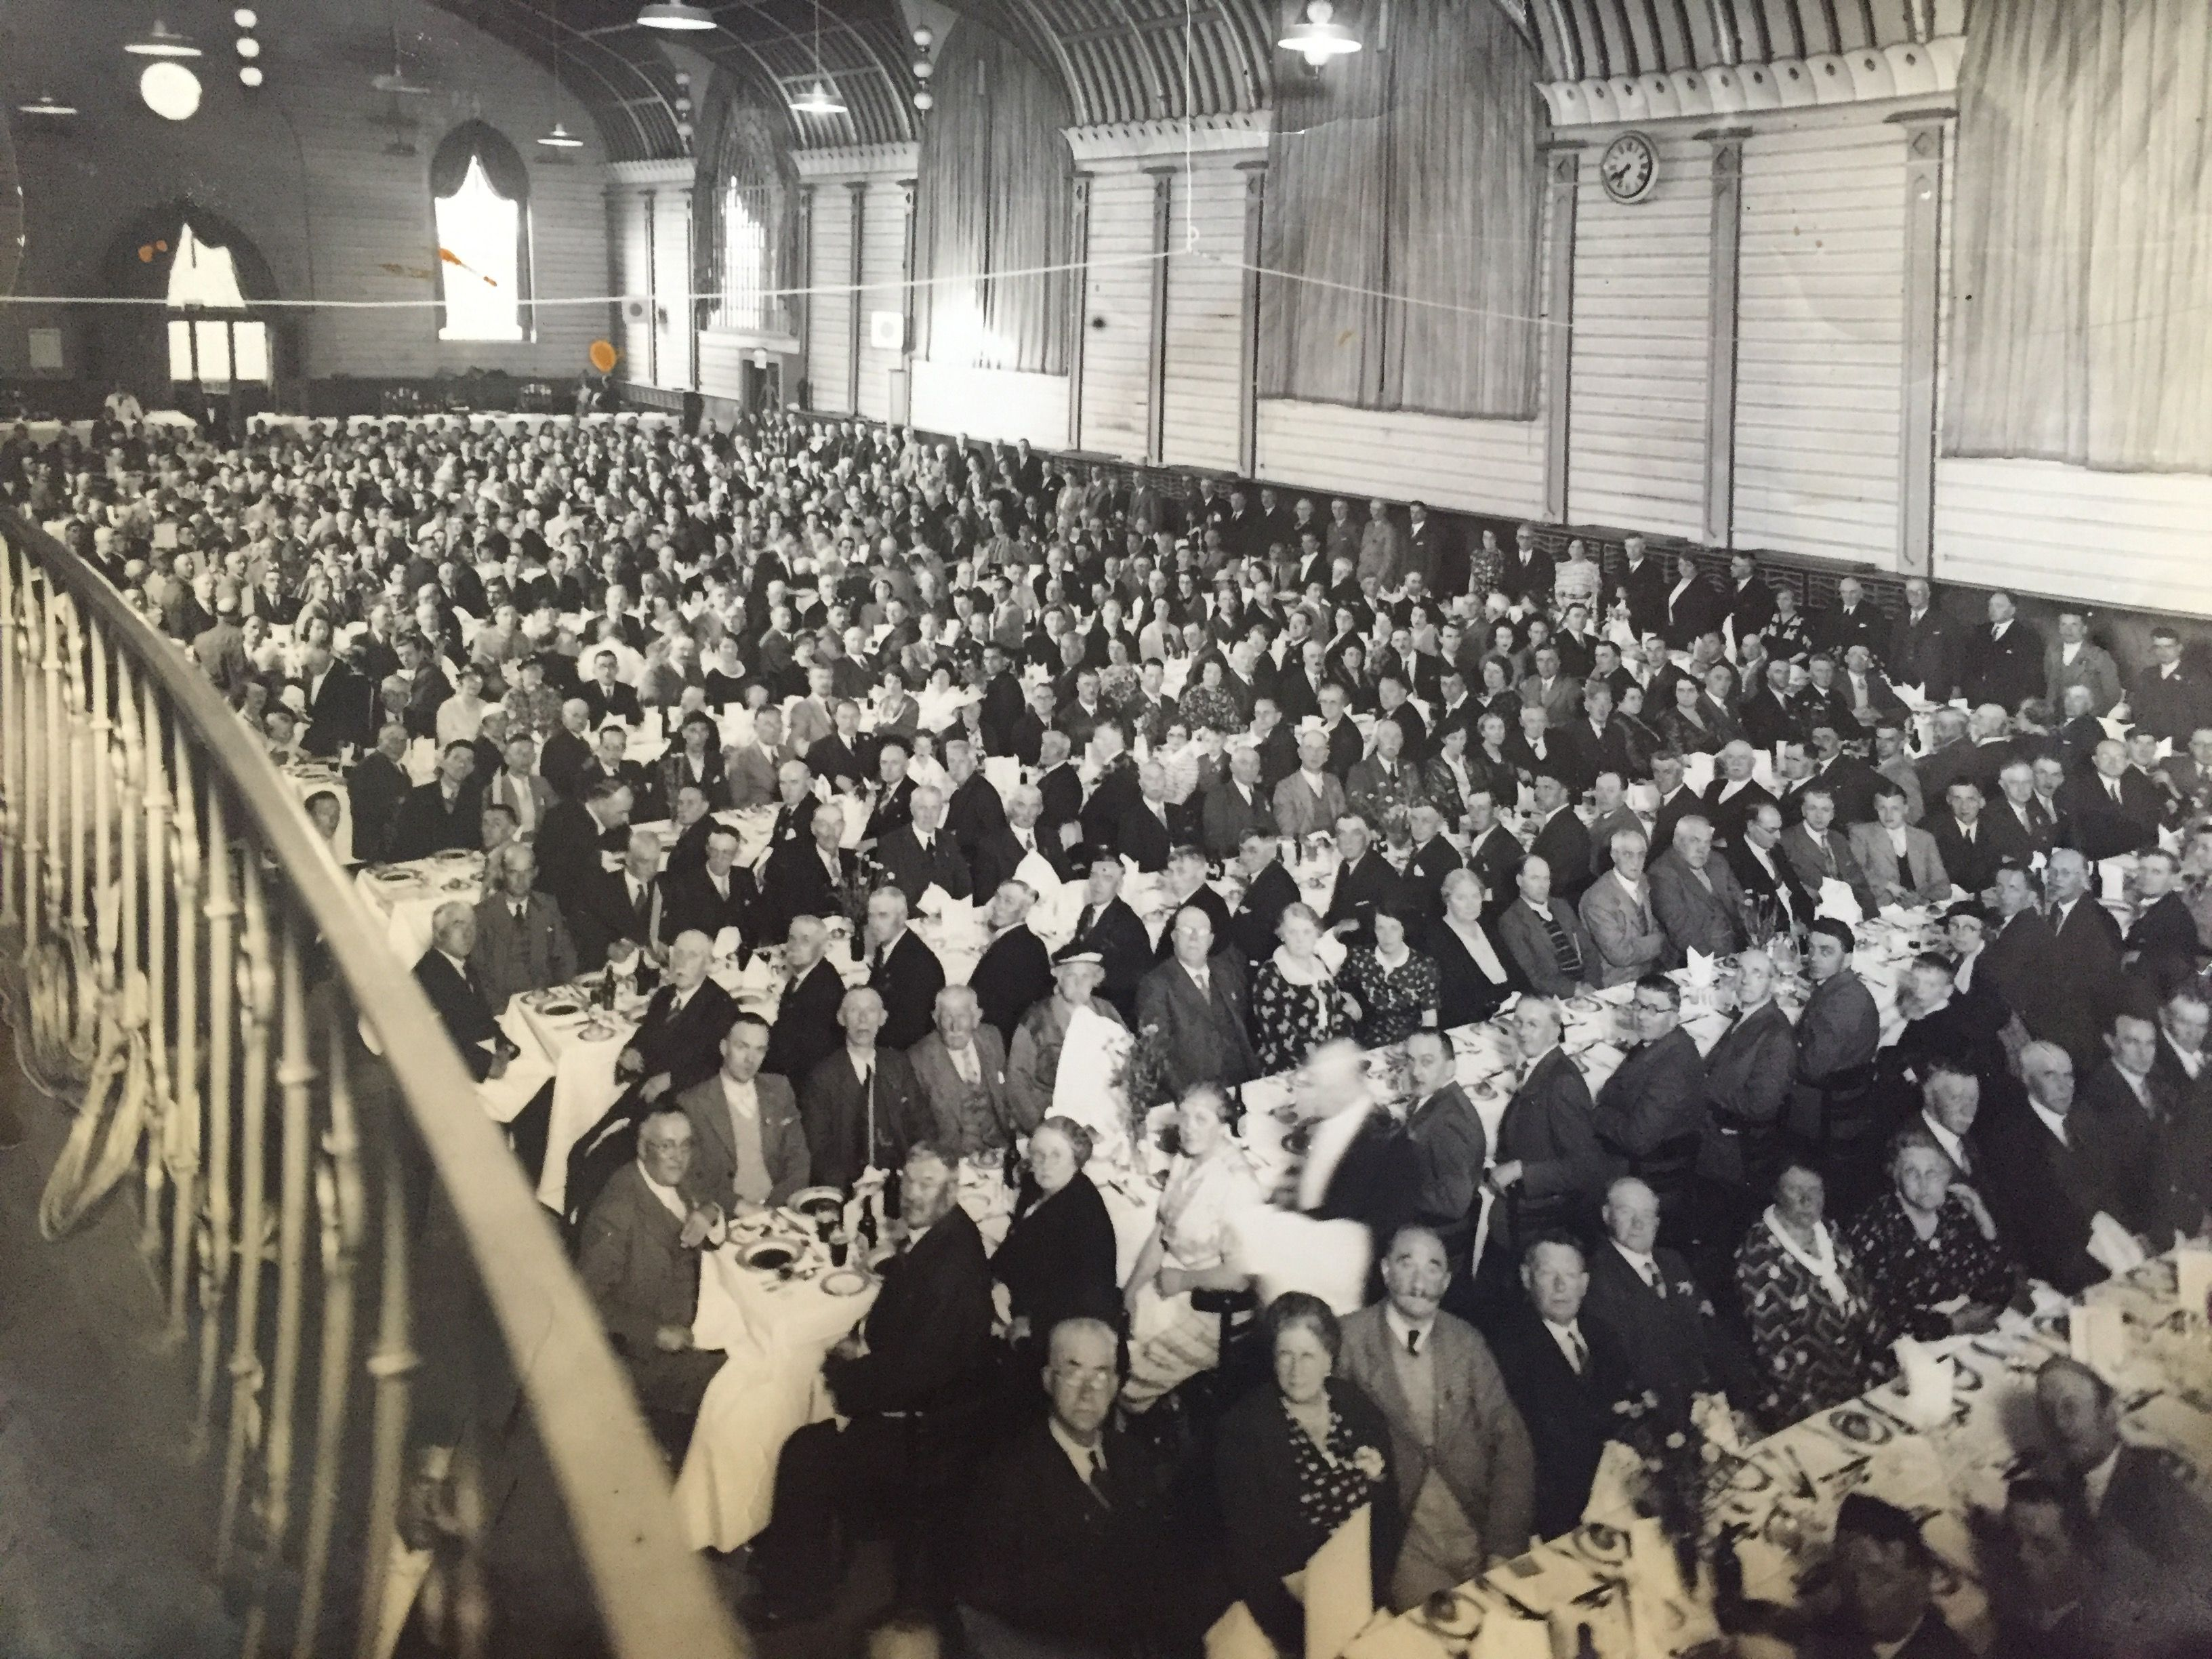 In the late-40s English's provided catering for Brighton Dome - here's a packed audience.